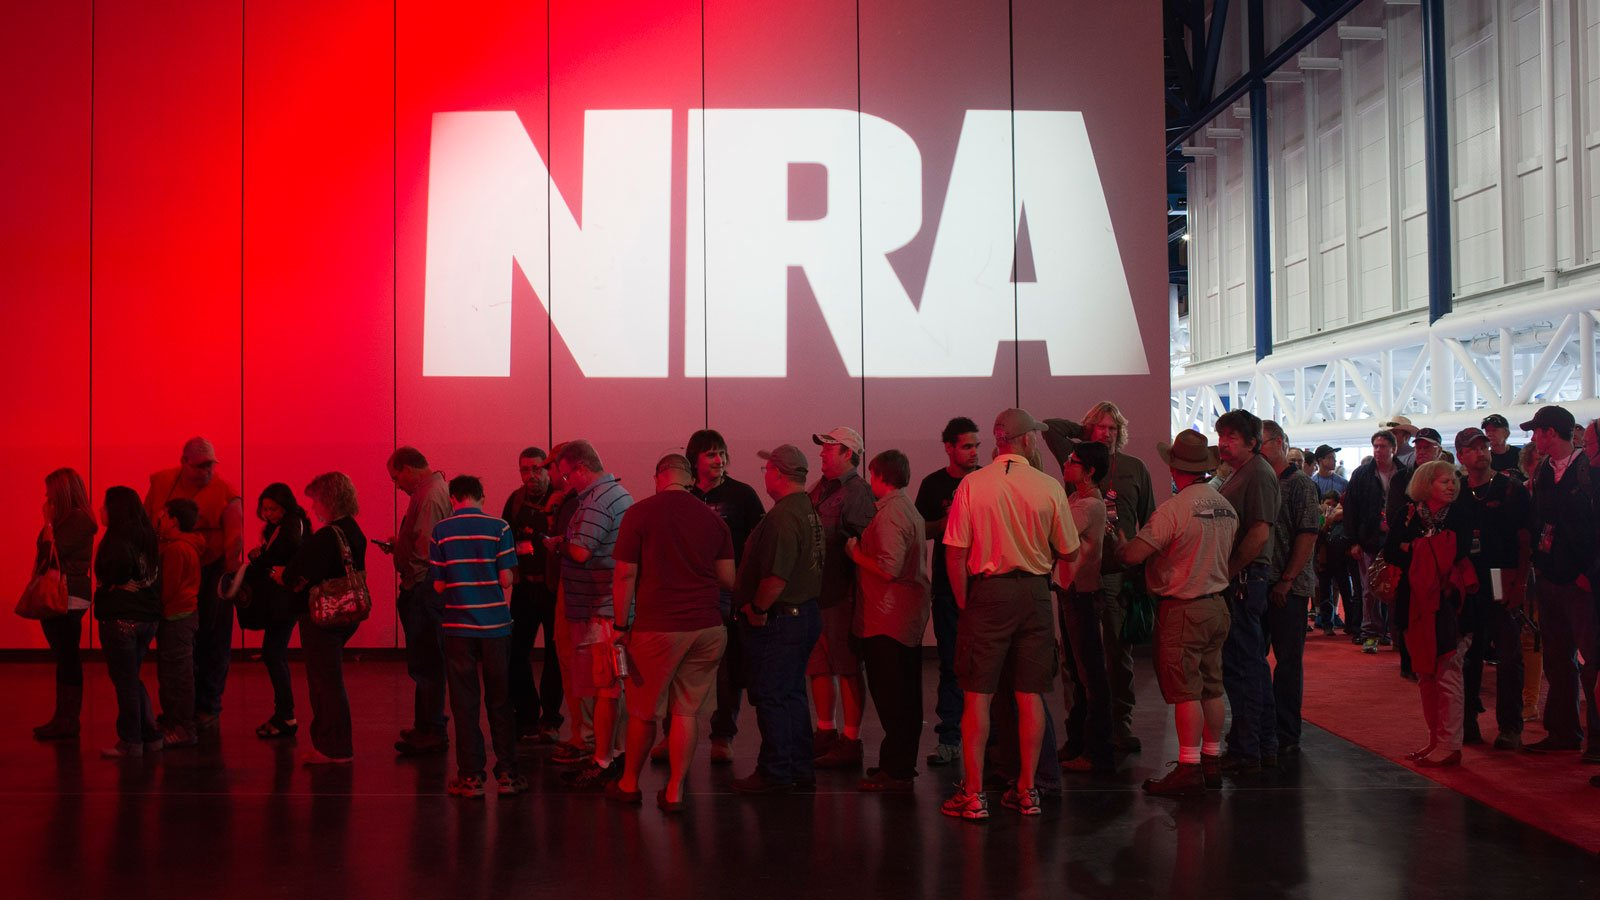 "National Rifle Association memberships surged in the wake of the anti-NRA protests and ""media bias"" that followed the February 14 Florida school shooting. The Daily Mail reports that Google searches for ""NRA membership"" rose ""4,900 percent"" since the Florida attack. That rise occurred at a time when many Democrats, media personalities, and Hollywood celebrities were denouncing the NRA …"